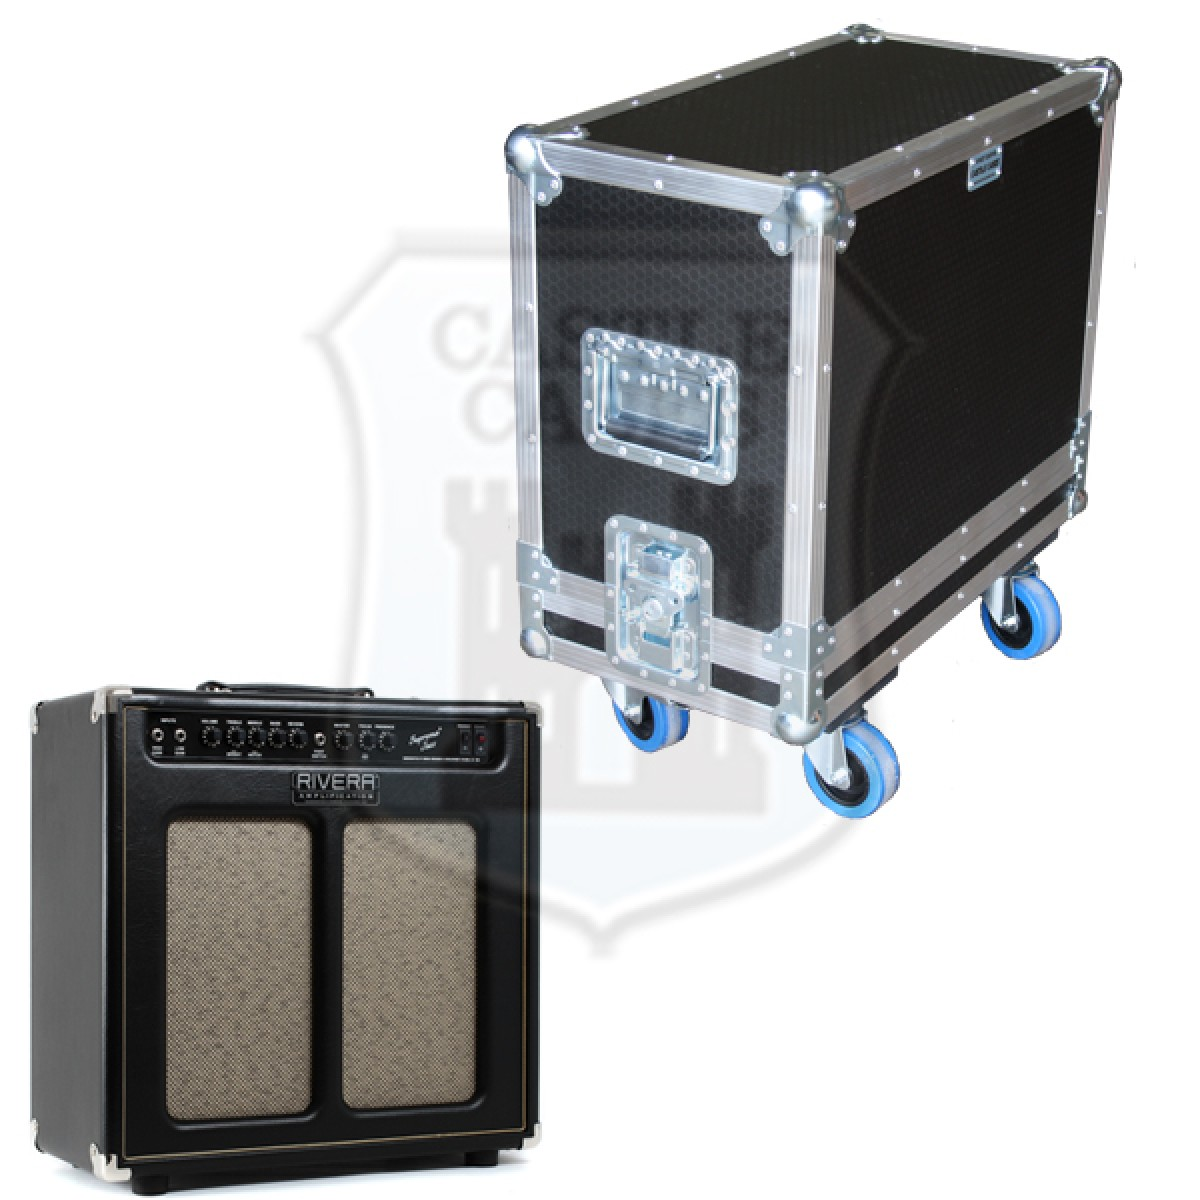 Rivera Jazz Suprema Flightcase